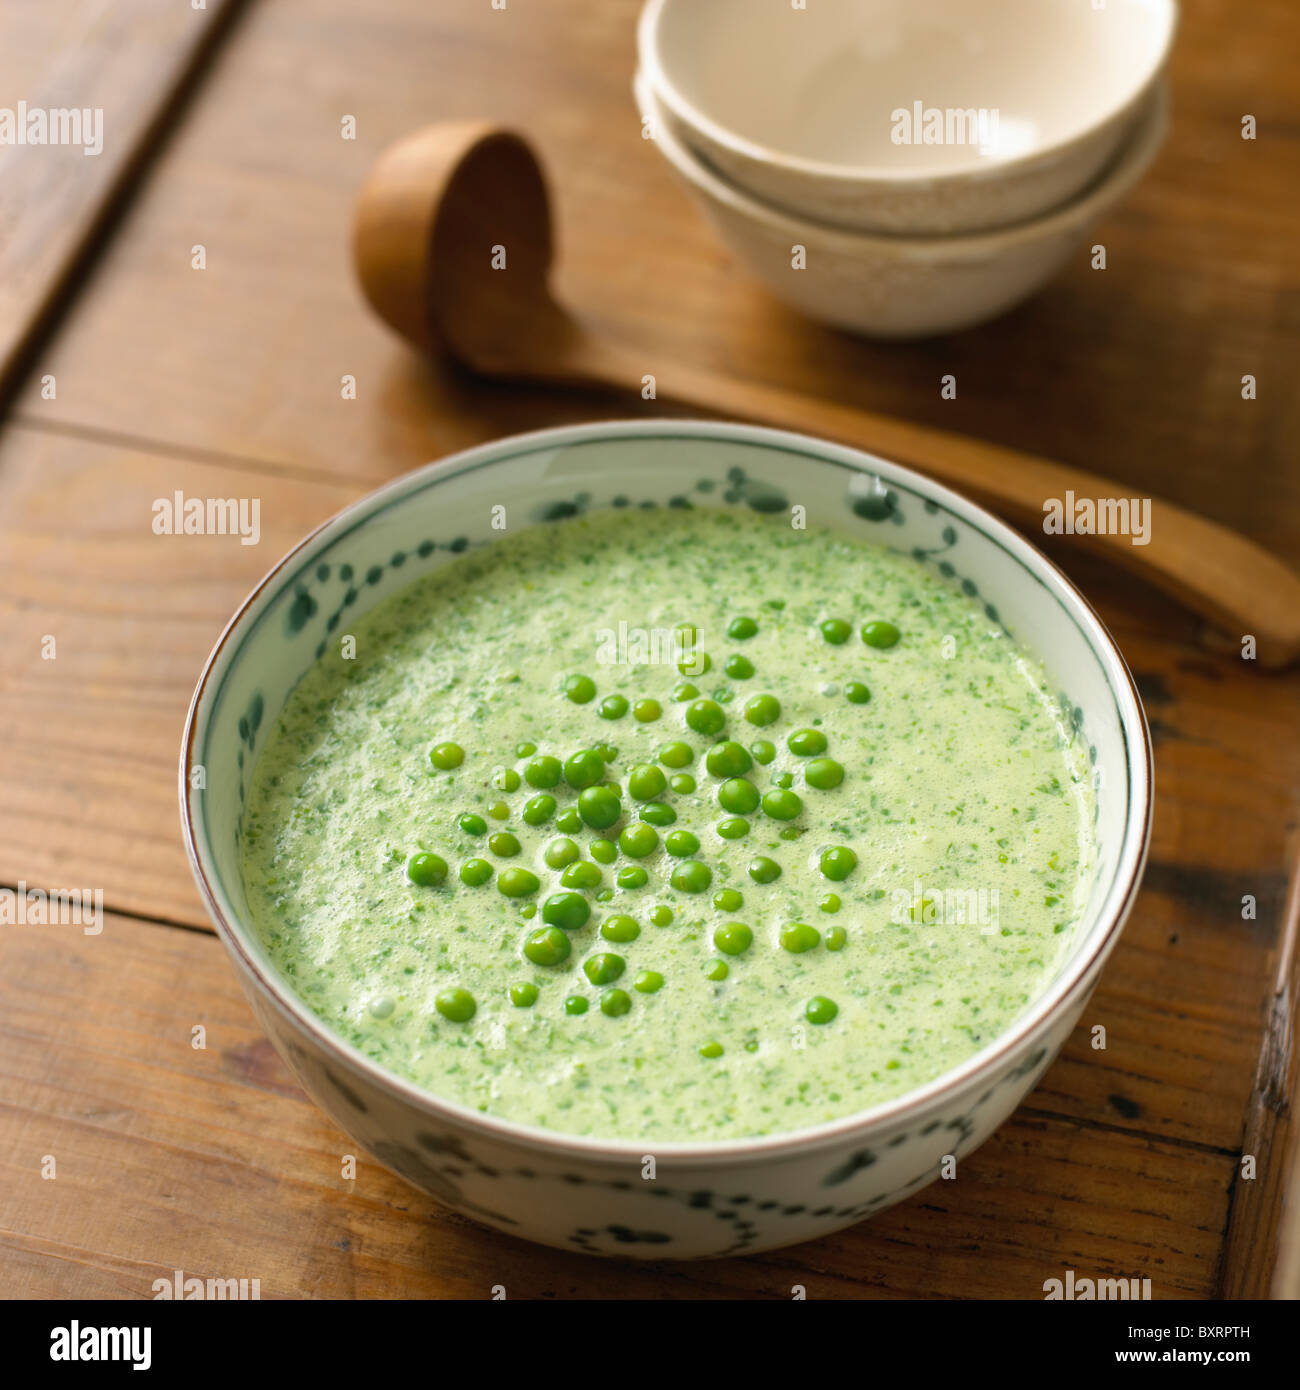 Chilled lettuce soup in a bowl with peas on top - Stock Image